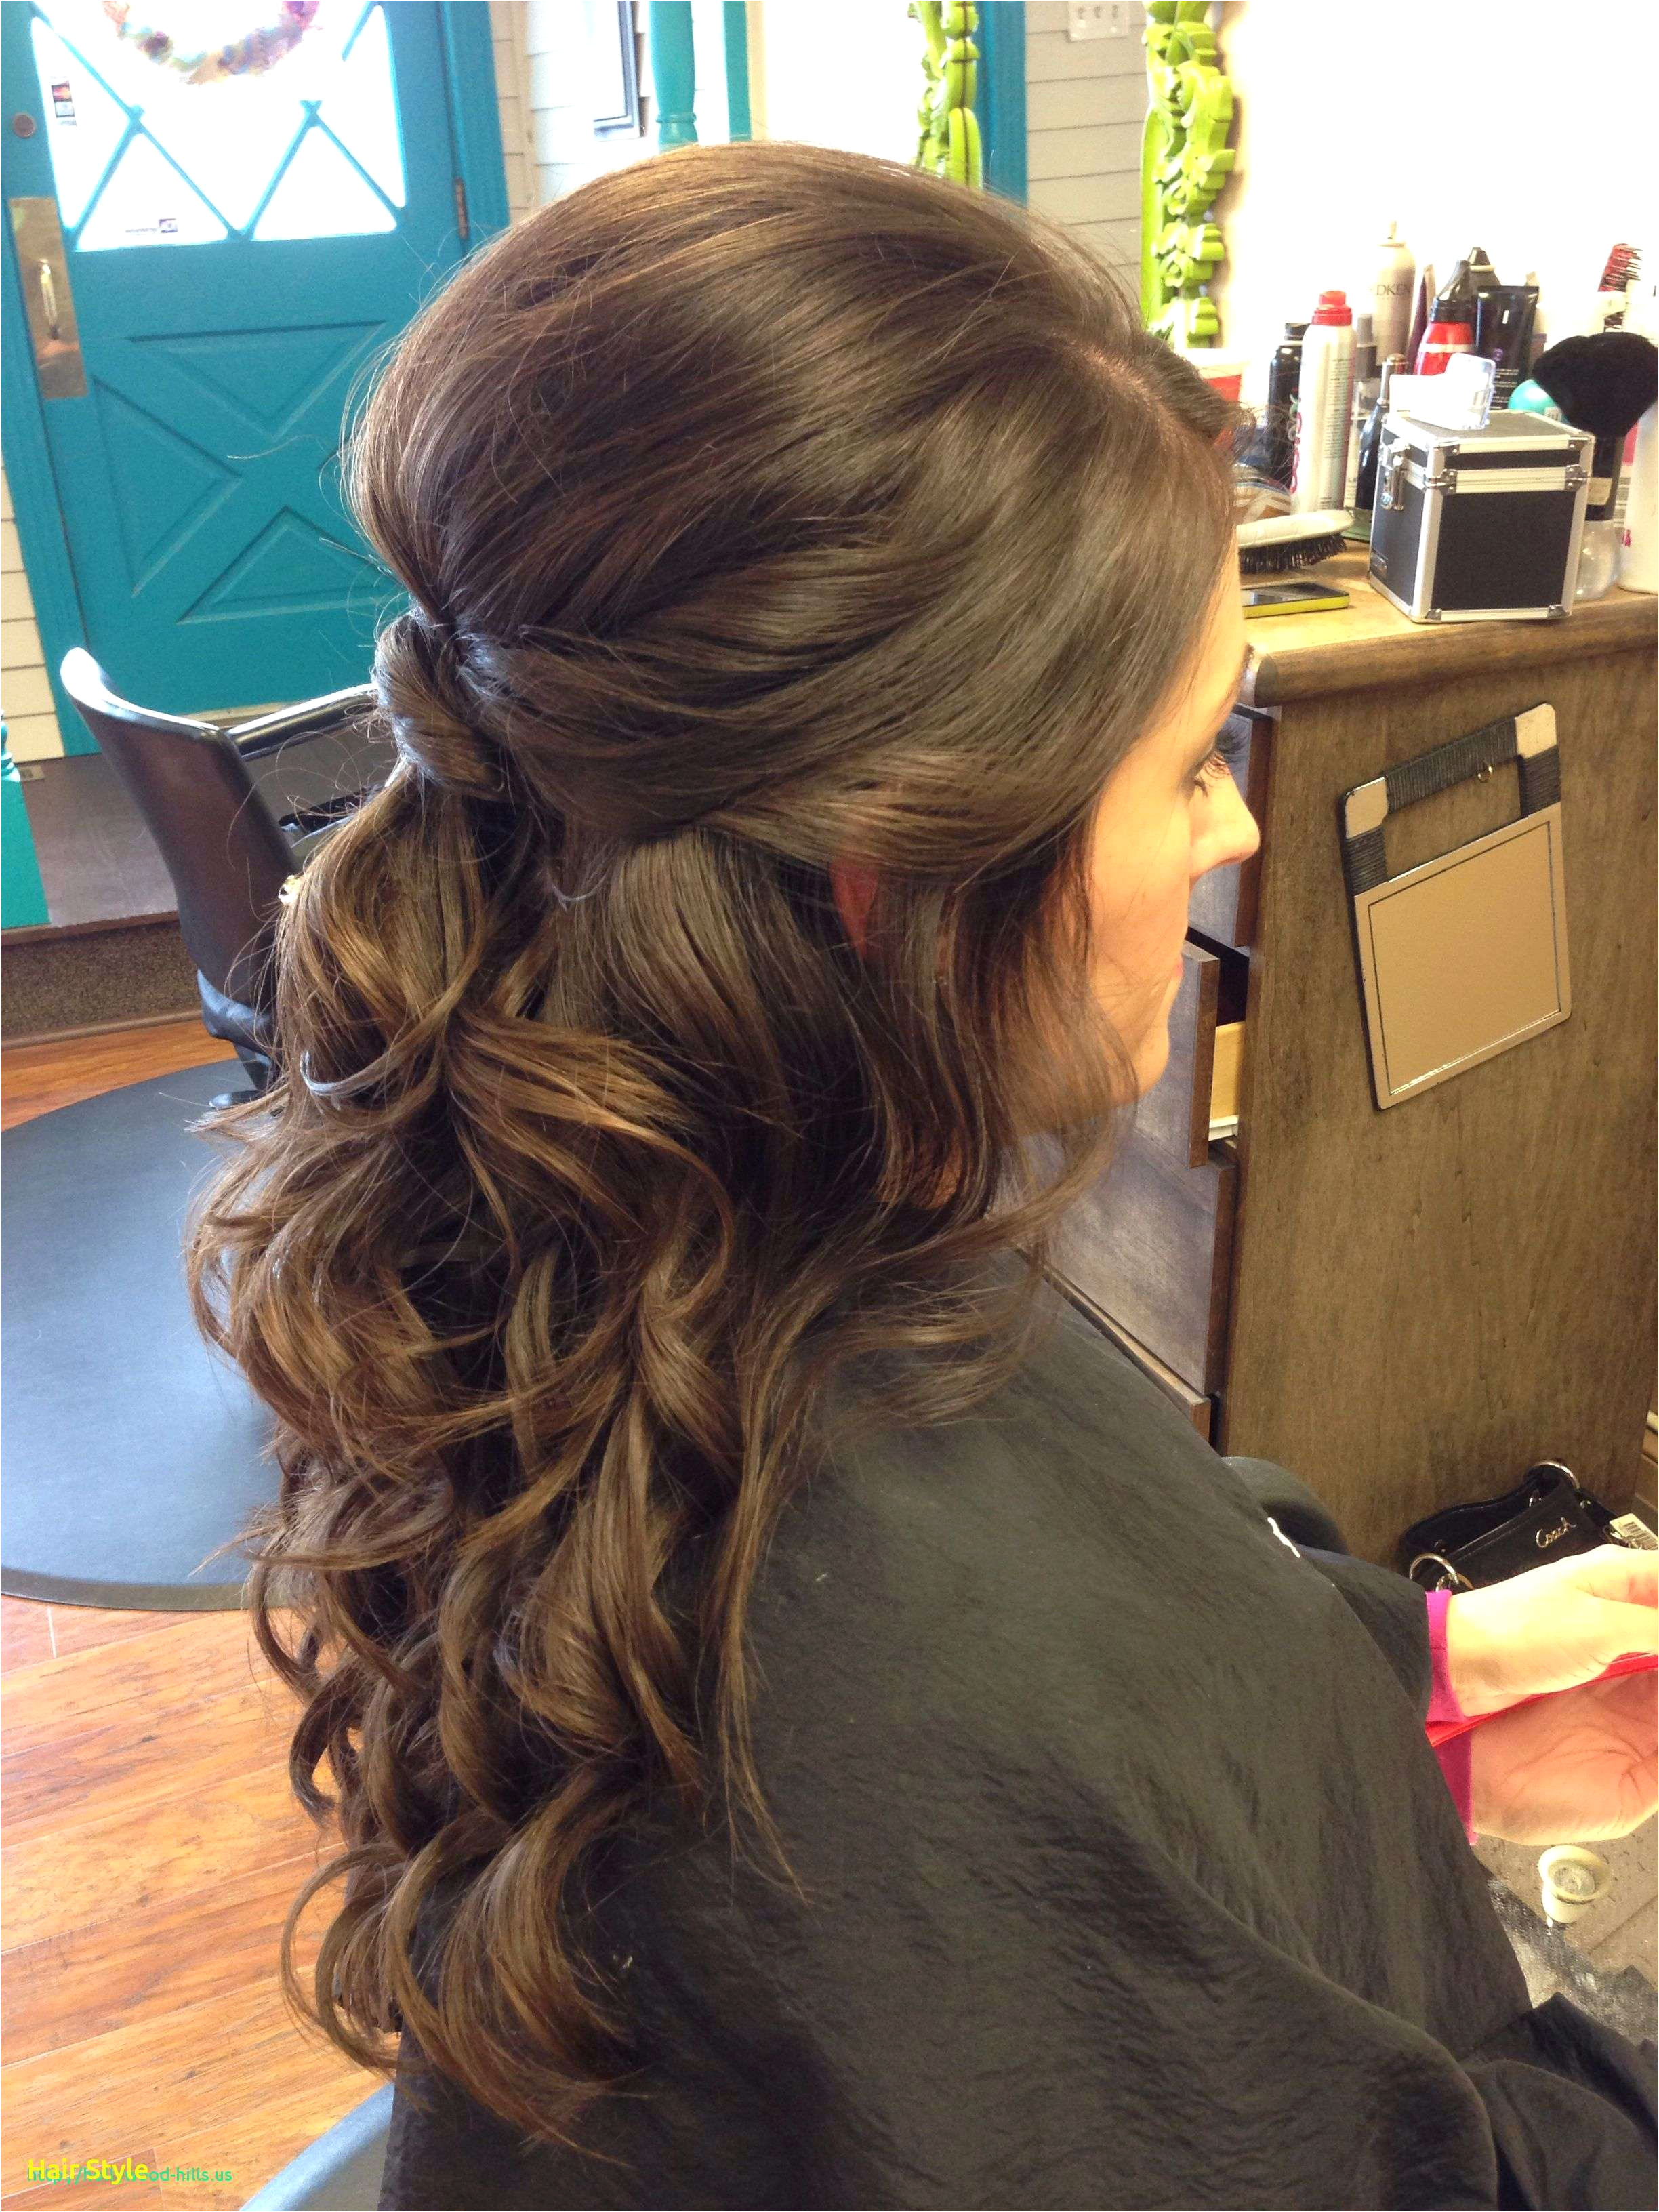 Half Up Half Down Curly Prom Hairstyles New Curly Wedding Hairstyles Half Up Half Down Elegant